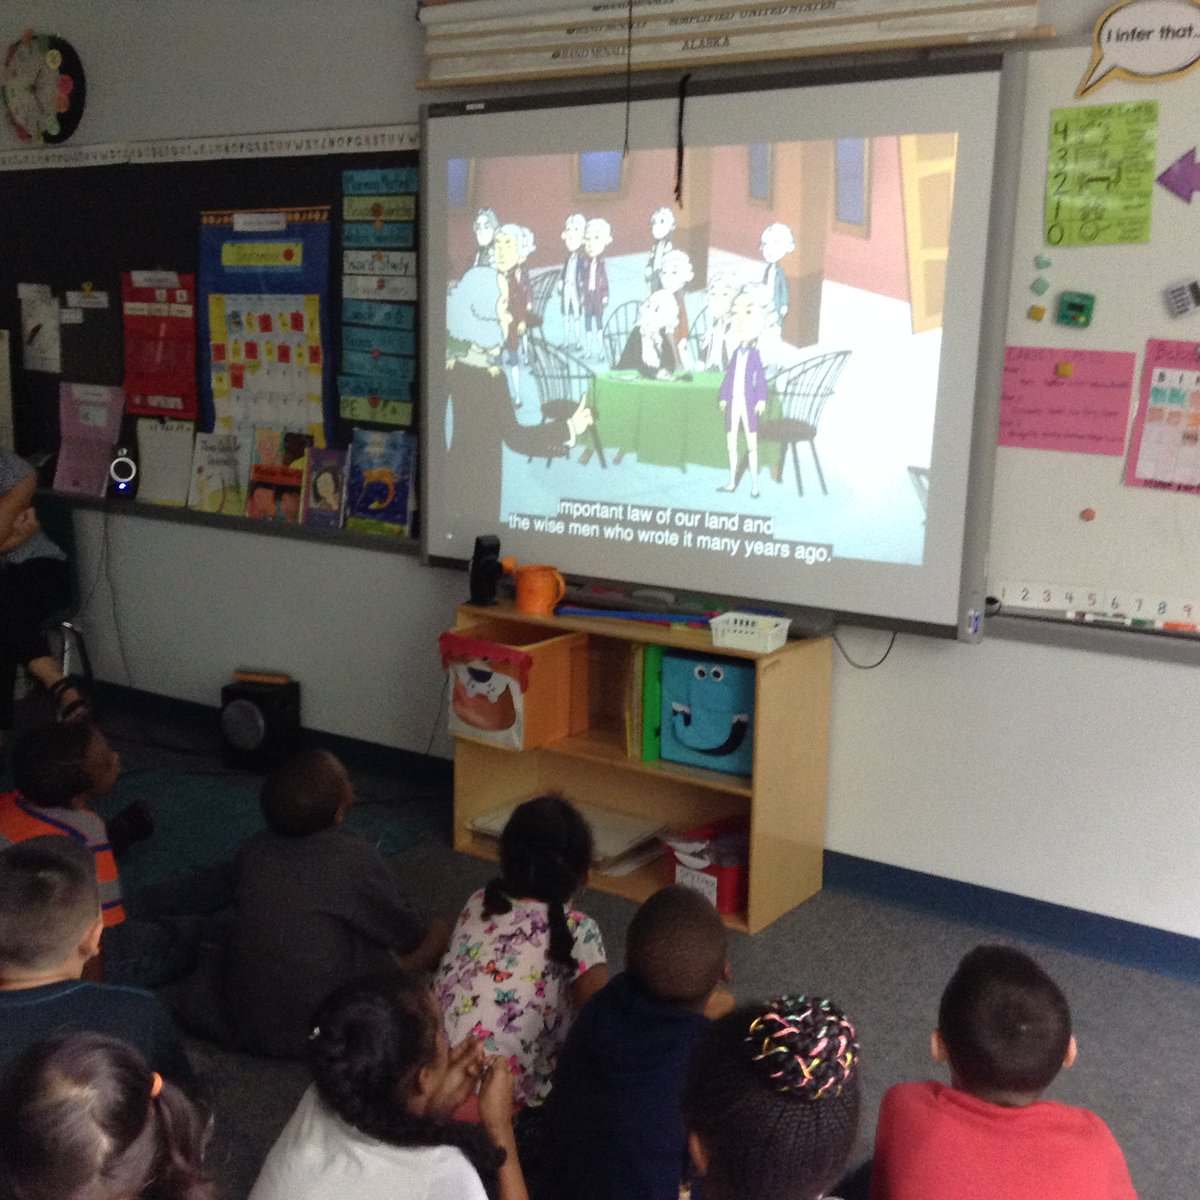 It's Constitution Day <a target='_blank' href='http://twitter.com/APSDrew'>@APSDrew</a> and students learned the who, what, why, where and how of the United States Constitution <a target='_blank' href='http://twitter.com/APSVirginia'>@APSVirginia</a> <a target='_blank' href='http://twitter.com/SuptPKM'>@SuptPKM</a> <a target='_blank' href='http://search.twitter.com/search?q=ConstitutionDay'><a target='_blank' href='https://twitter.com/hashtag/ConstitutionDay?src=hash'>#ConstitutionDay</a></a> <a target='_blank' href='http://search.twitter.com/search?q=EngageAPS'><a target='_blank' href='https://twitter.com/hashtag/EngageAPS?src=hash'>#EngageAPS</a></a> <a target='_blank' href='https://t.co/jC6X2TSUZX'>https://t.co/jC6X2TSUZX</a>